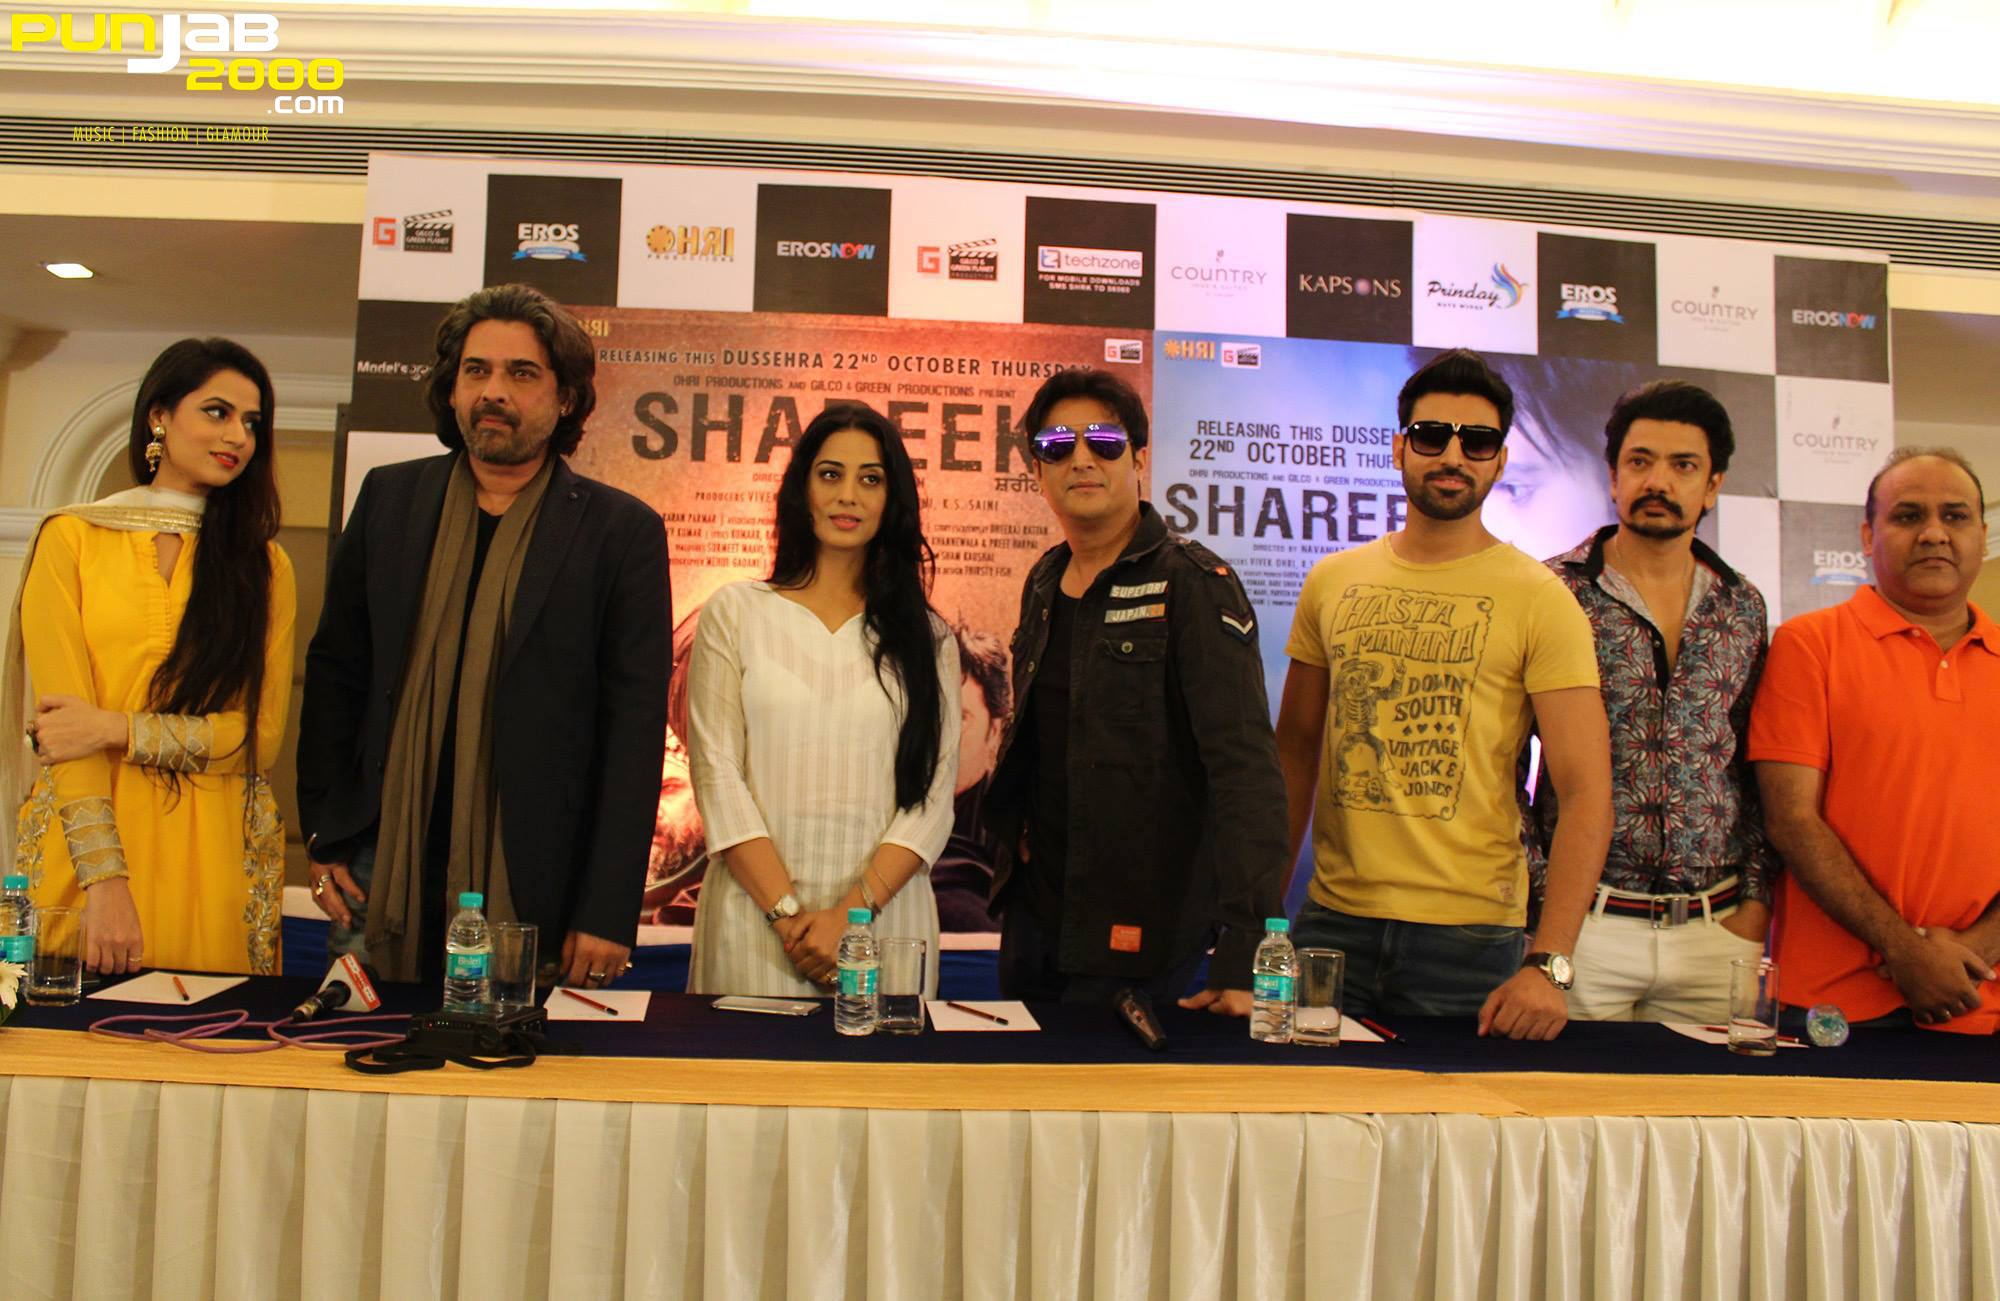 Jimmy Sheirgill, Mahie Gill, Navaniat Singh - Shareek Press Conference